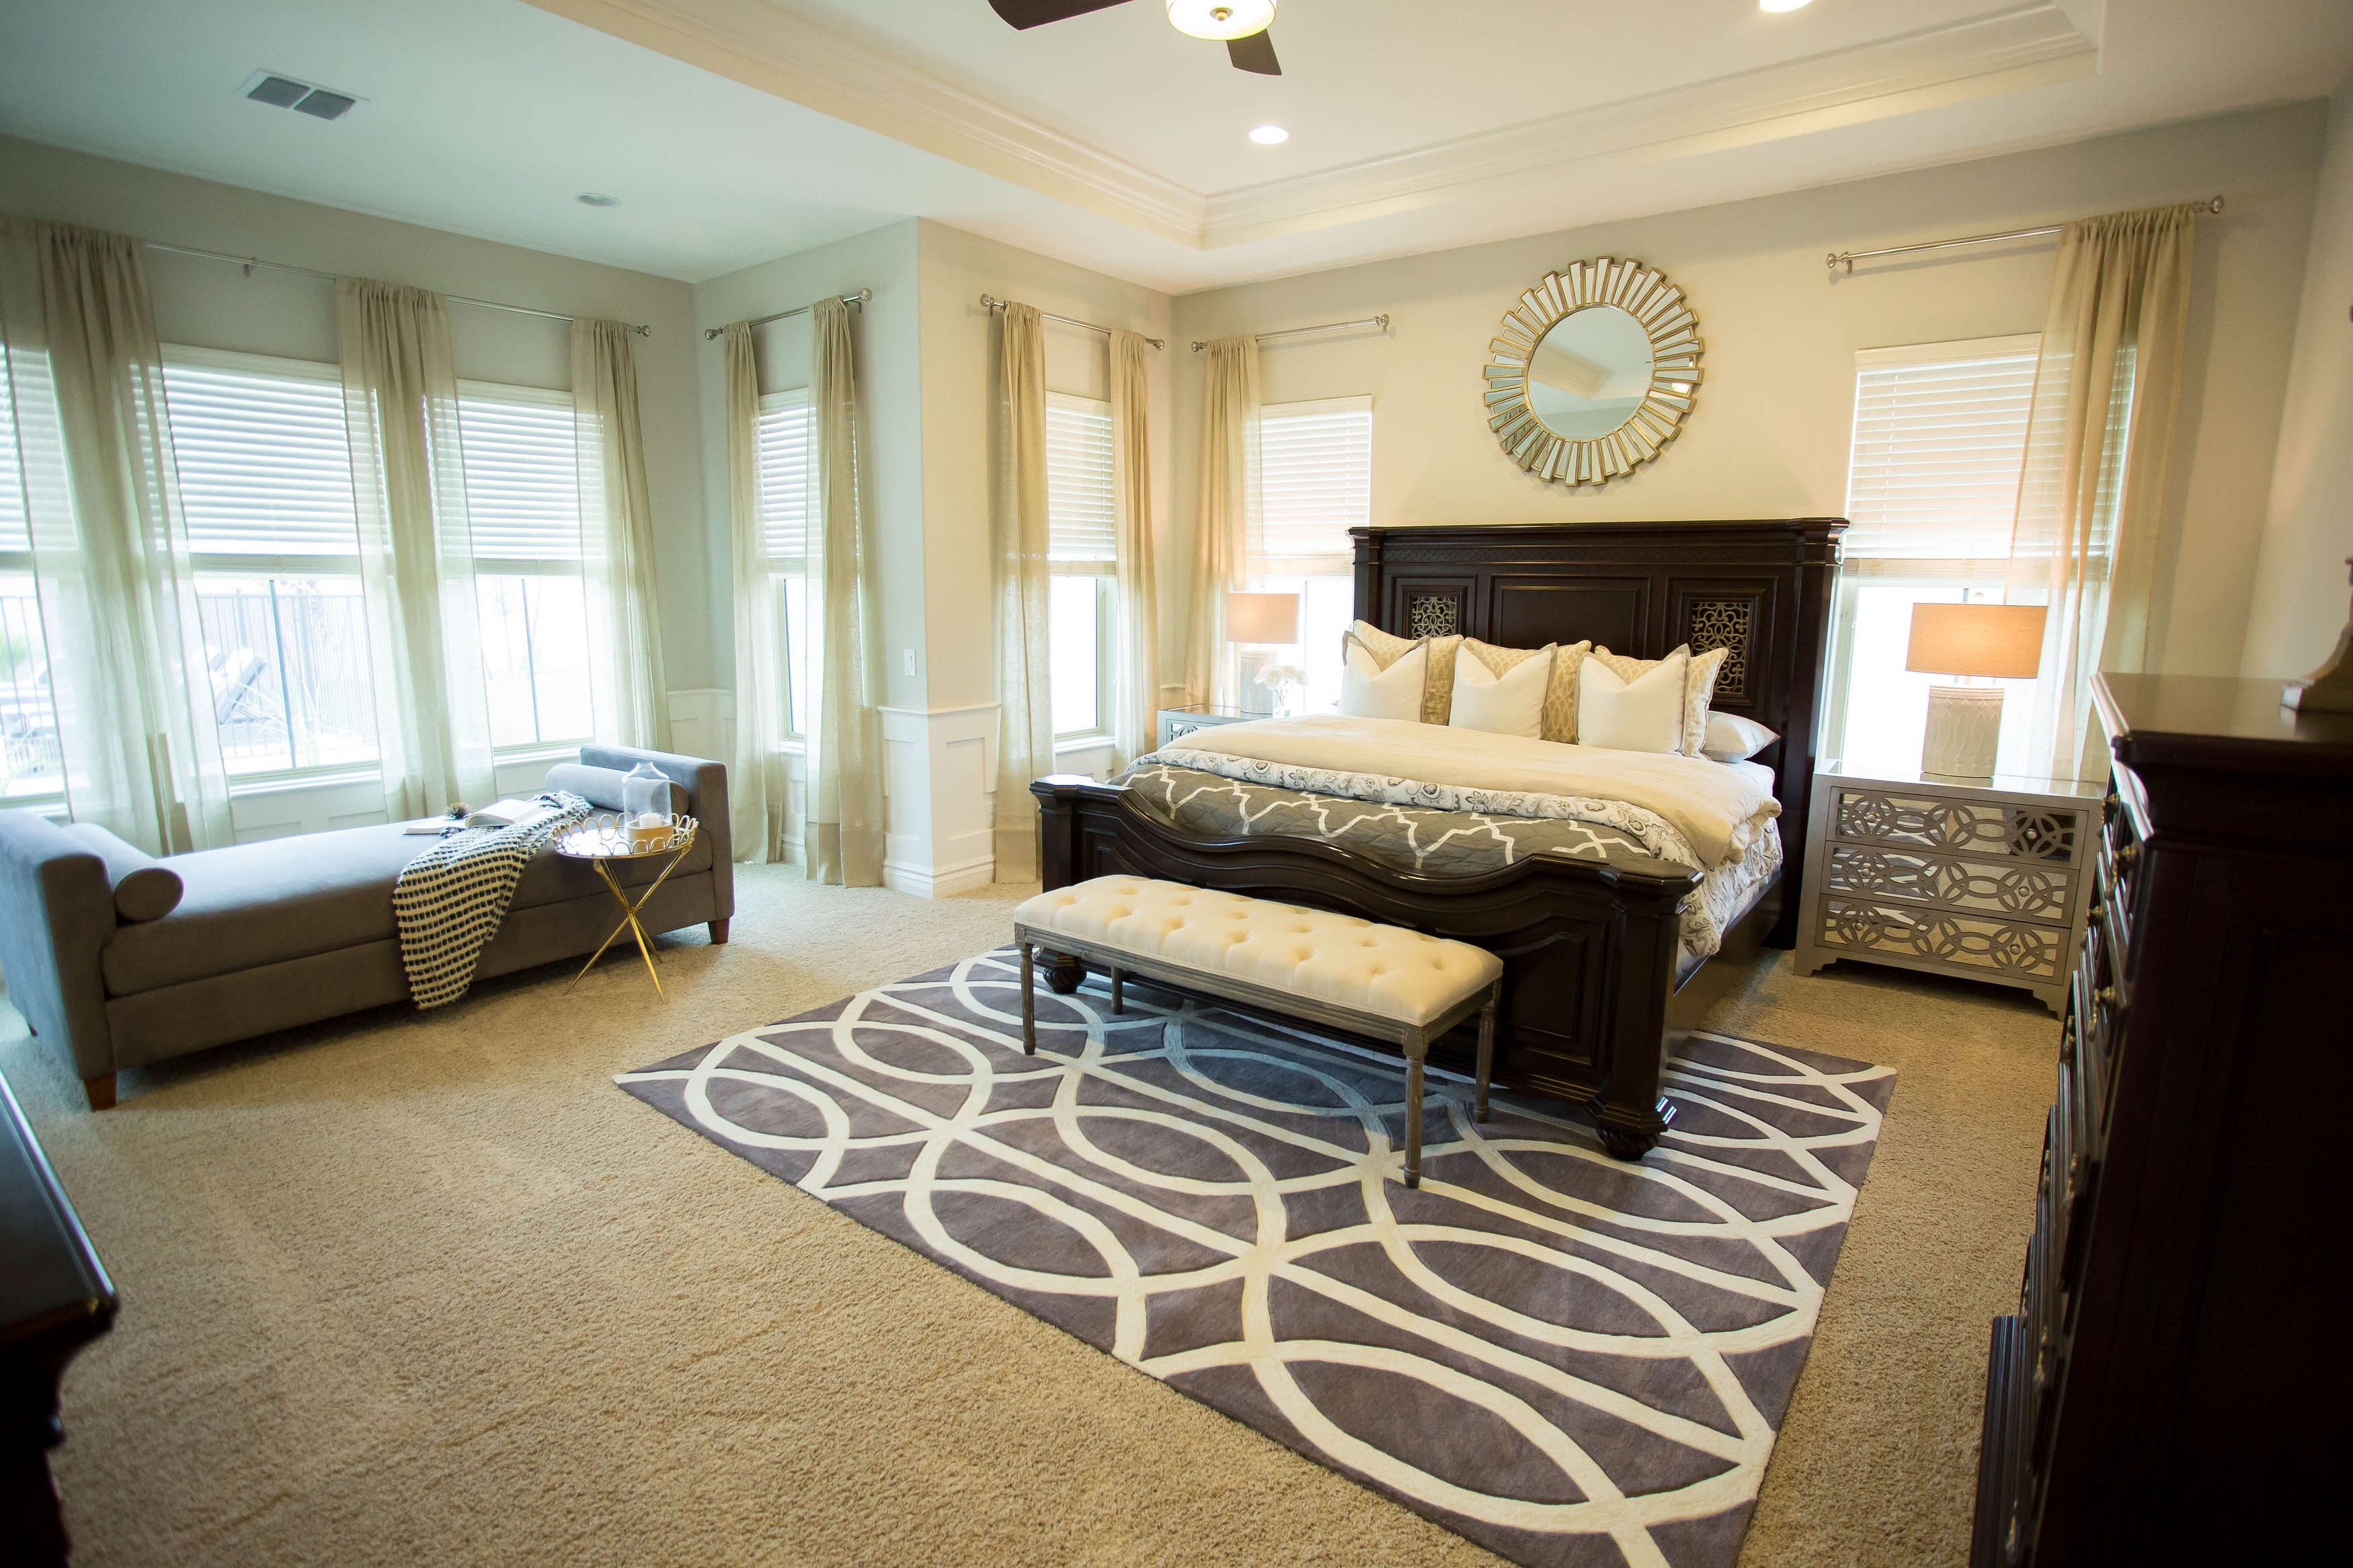 Sophisticated Parents Bedroom With Reading Nook (Image 29 of 30)